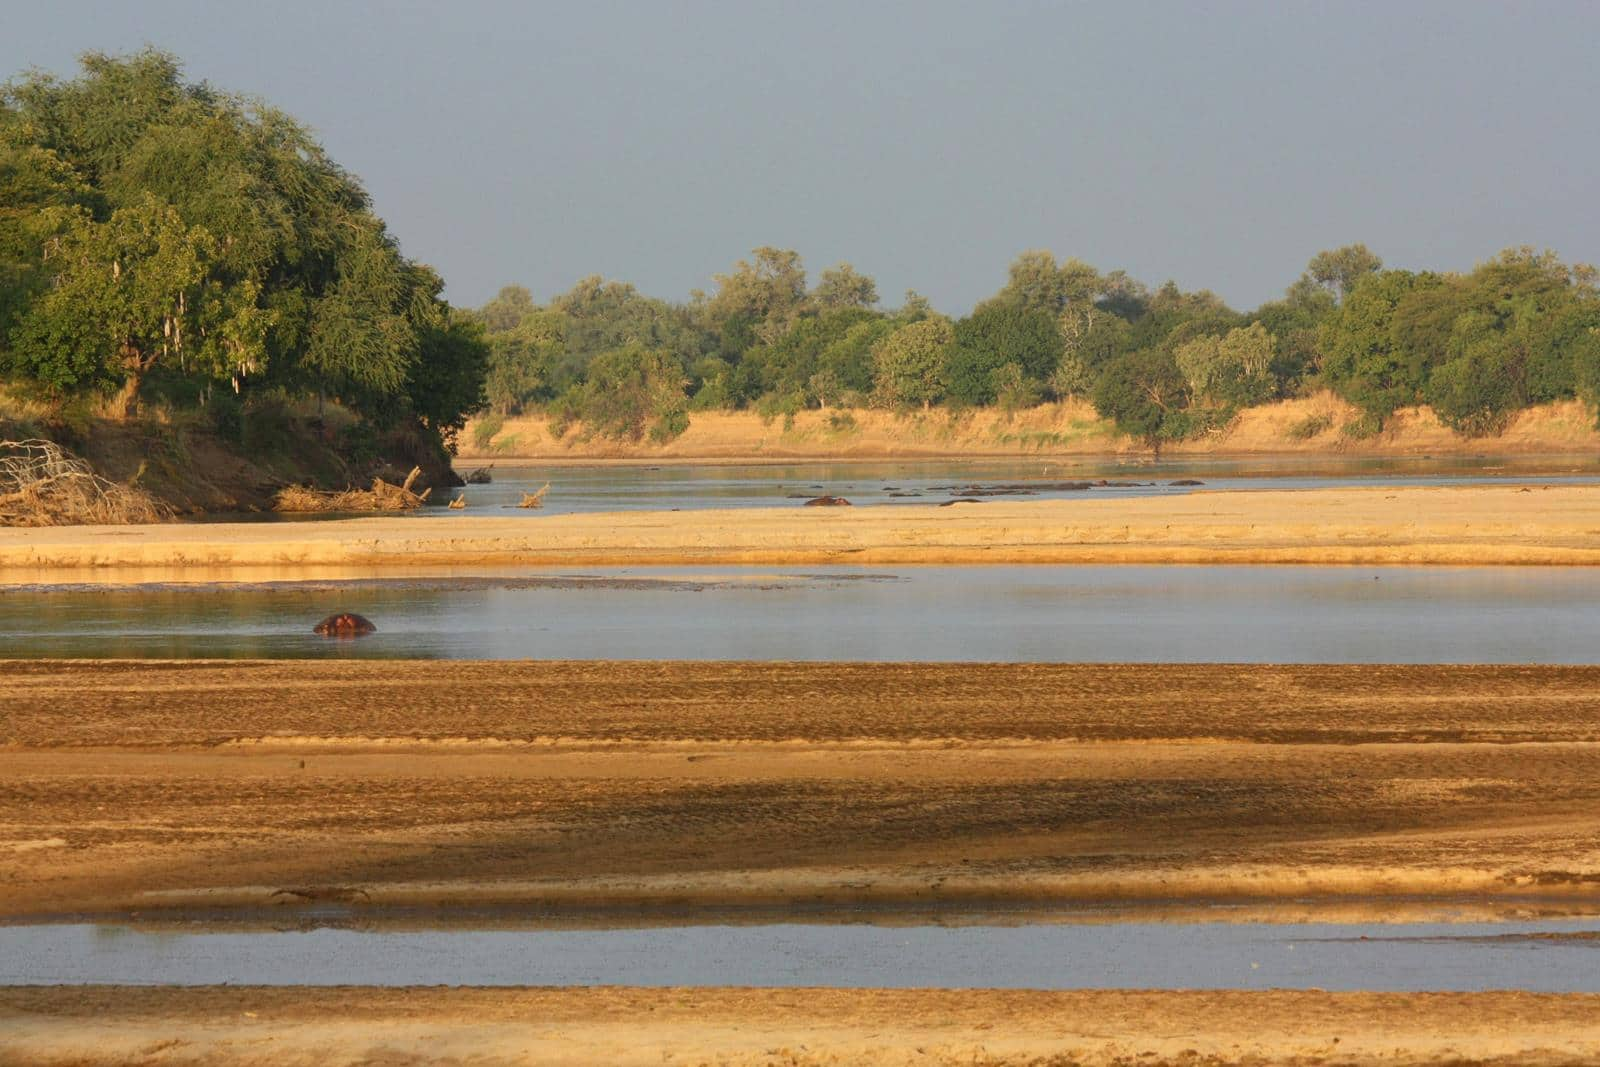 South Luangwa has a special ambiance.